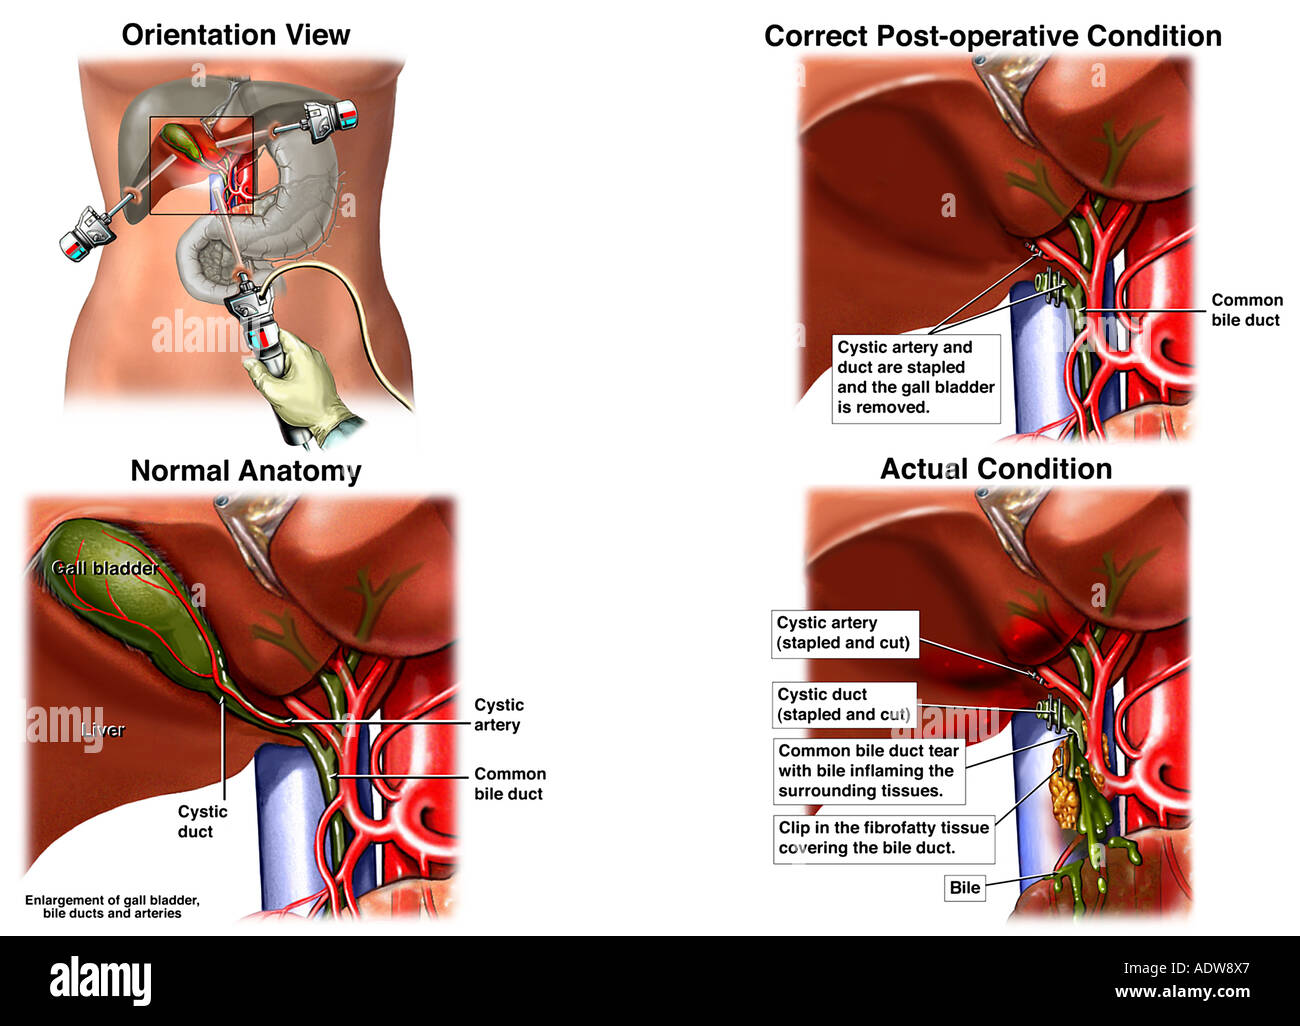 Laparascopic Cholecystectomy Gallbladder Removal Surgery with Accidental Damage to the Common Bile Duct Stock Photo